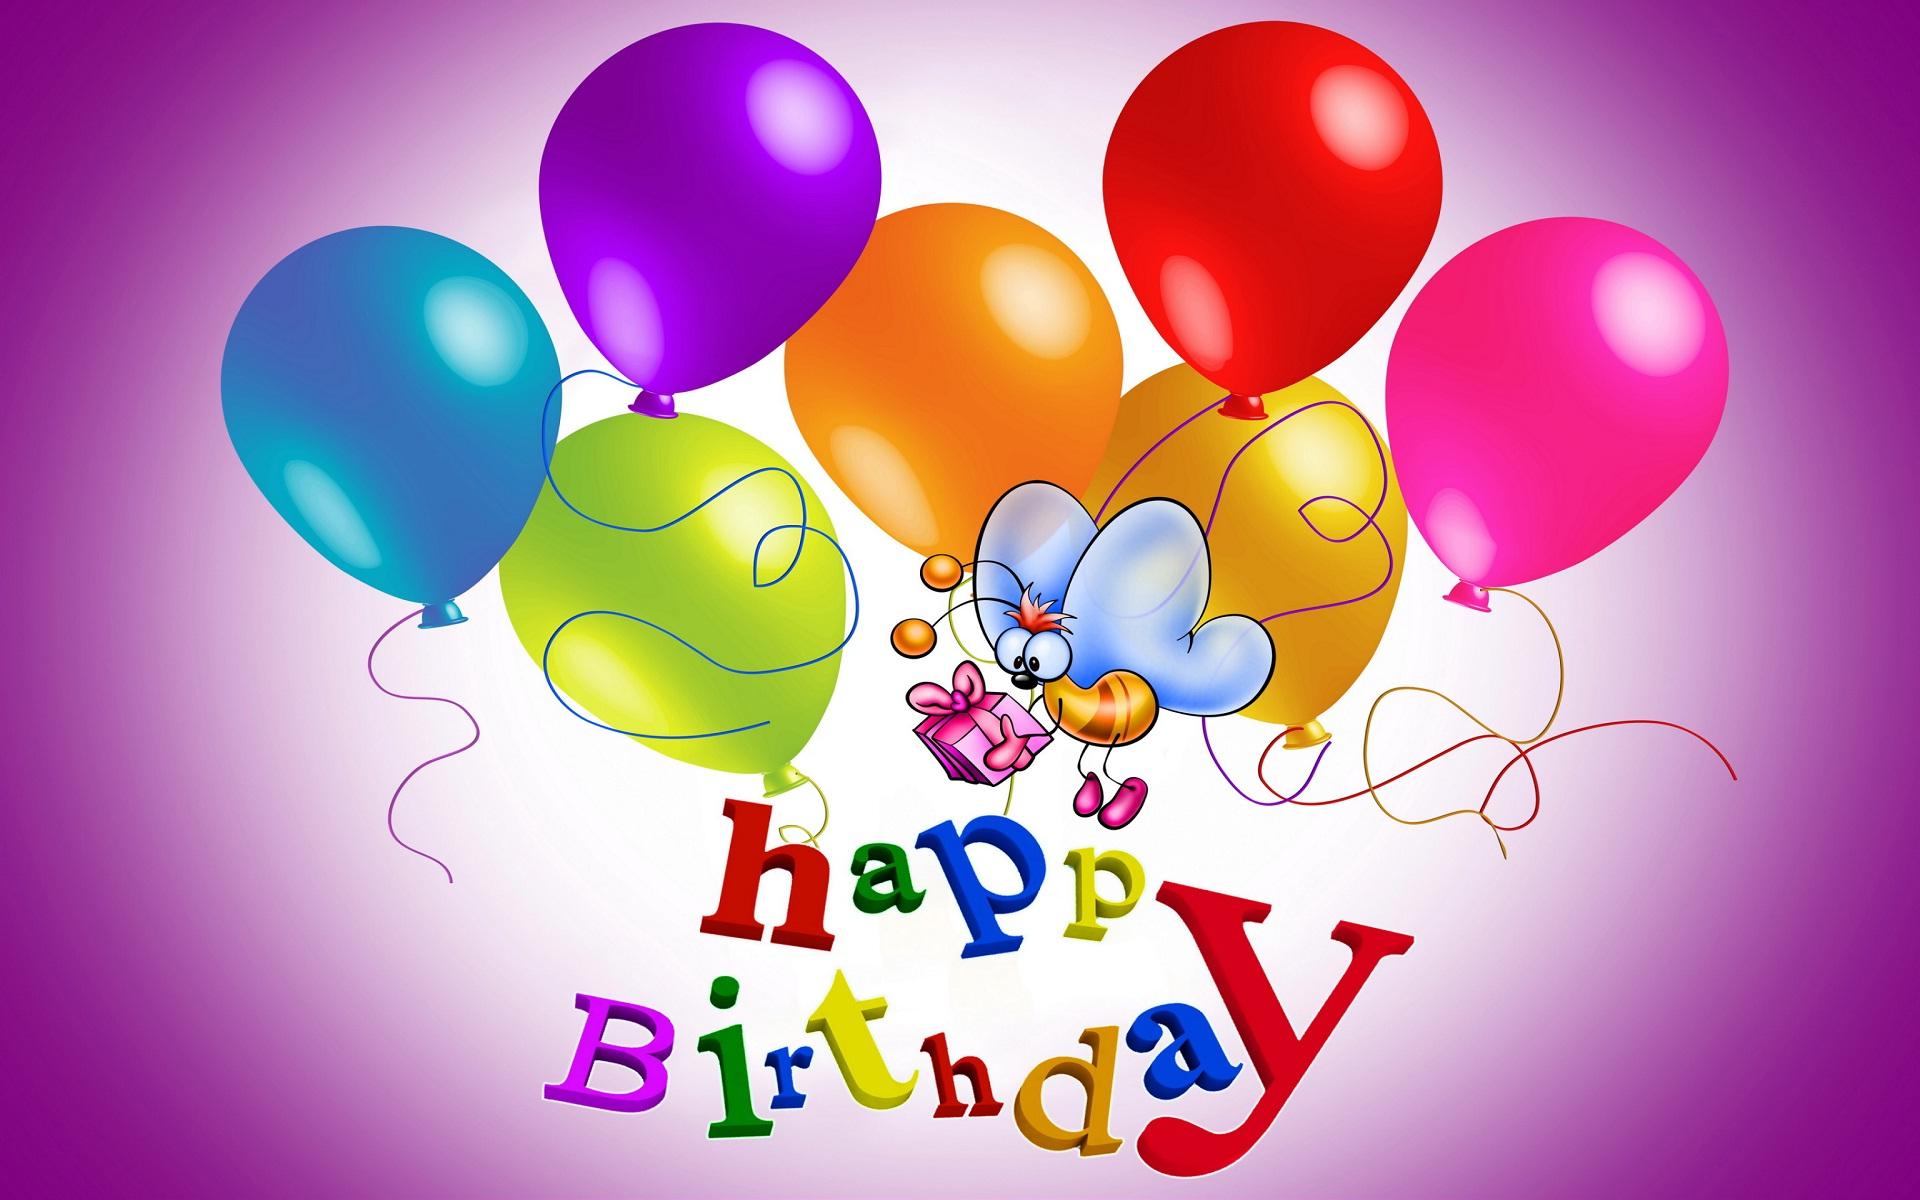 Download beautiful birthday pictures wallpapers gallery - Beautiful birthday wallpaper ...